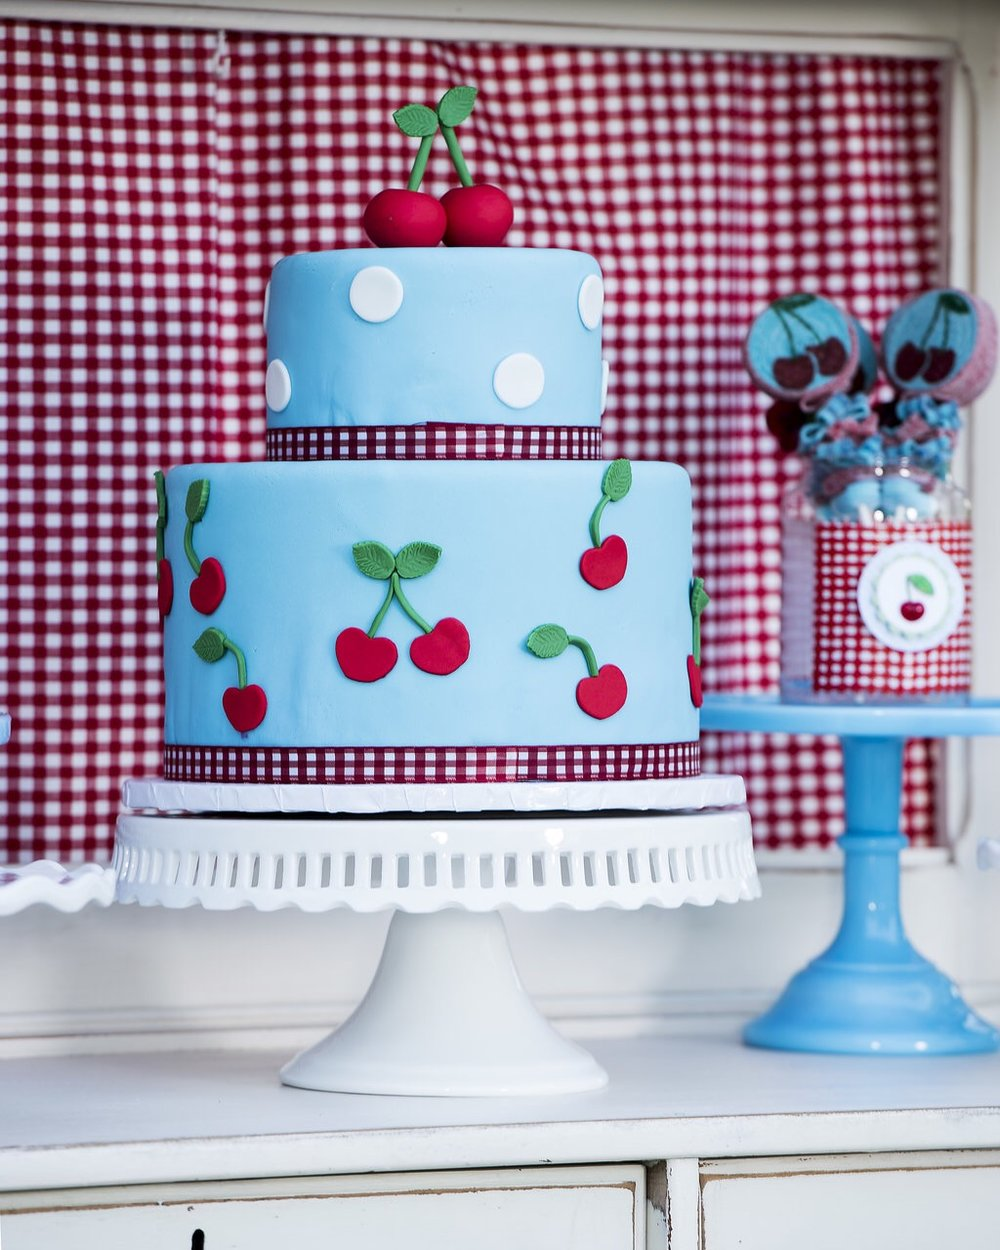 The prettiest Cherry on Top party cake for summer birthday parties. Created by Sweet Carousel Cakes - as seen on Mint Event Design www.minteventdesign.com #summerparties #partyideas #kidspartyideas #partyplanning #birthdaypartyideas #kidsparty #cherryparty #partycake